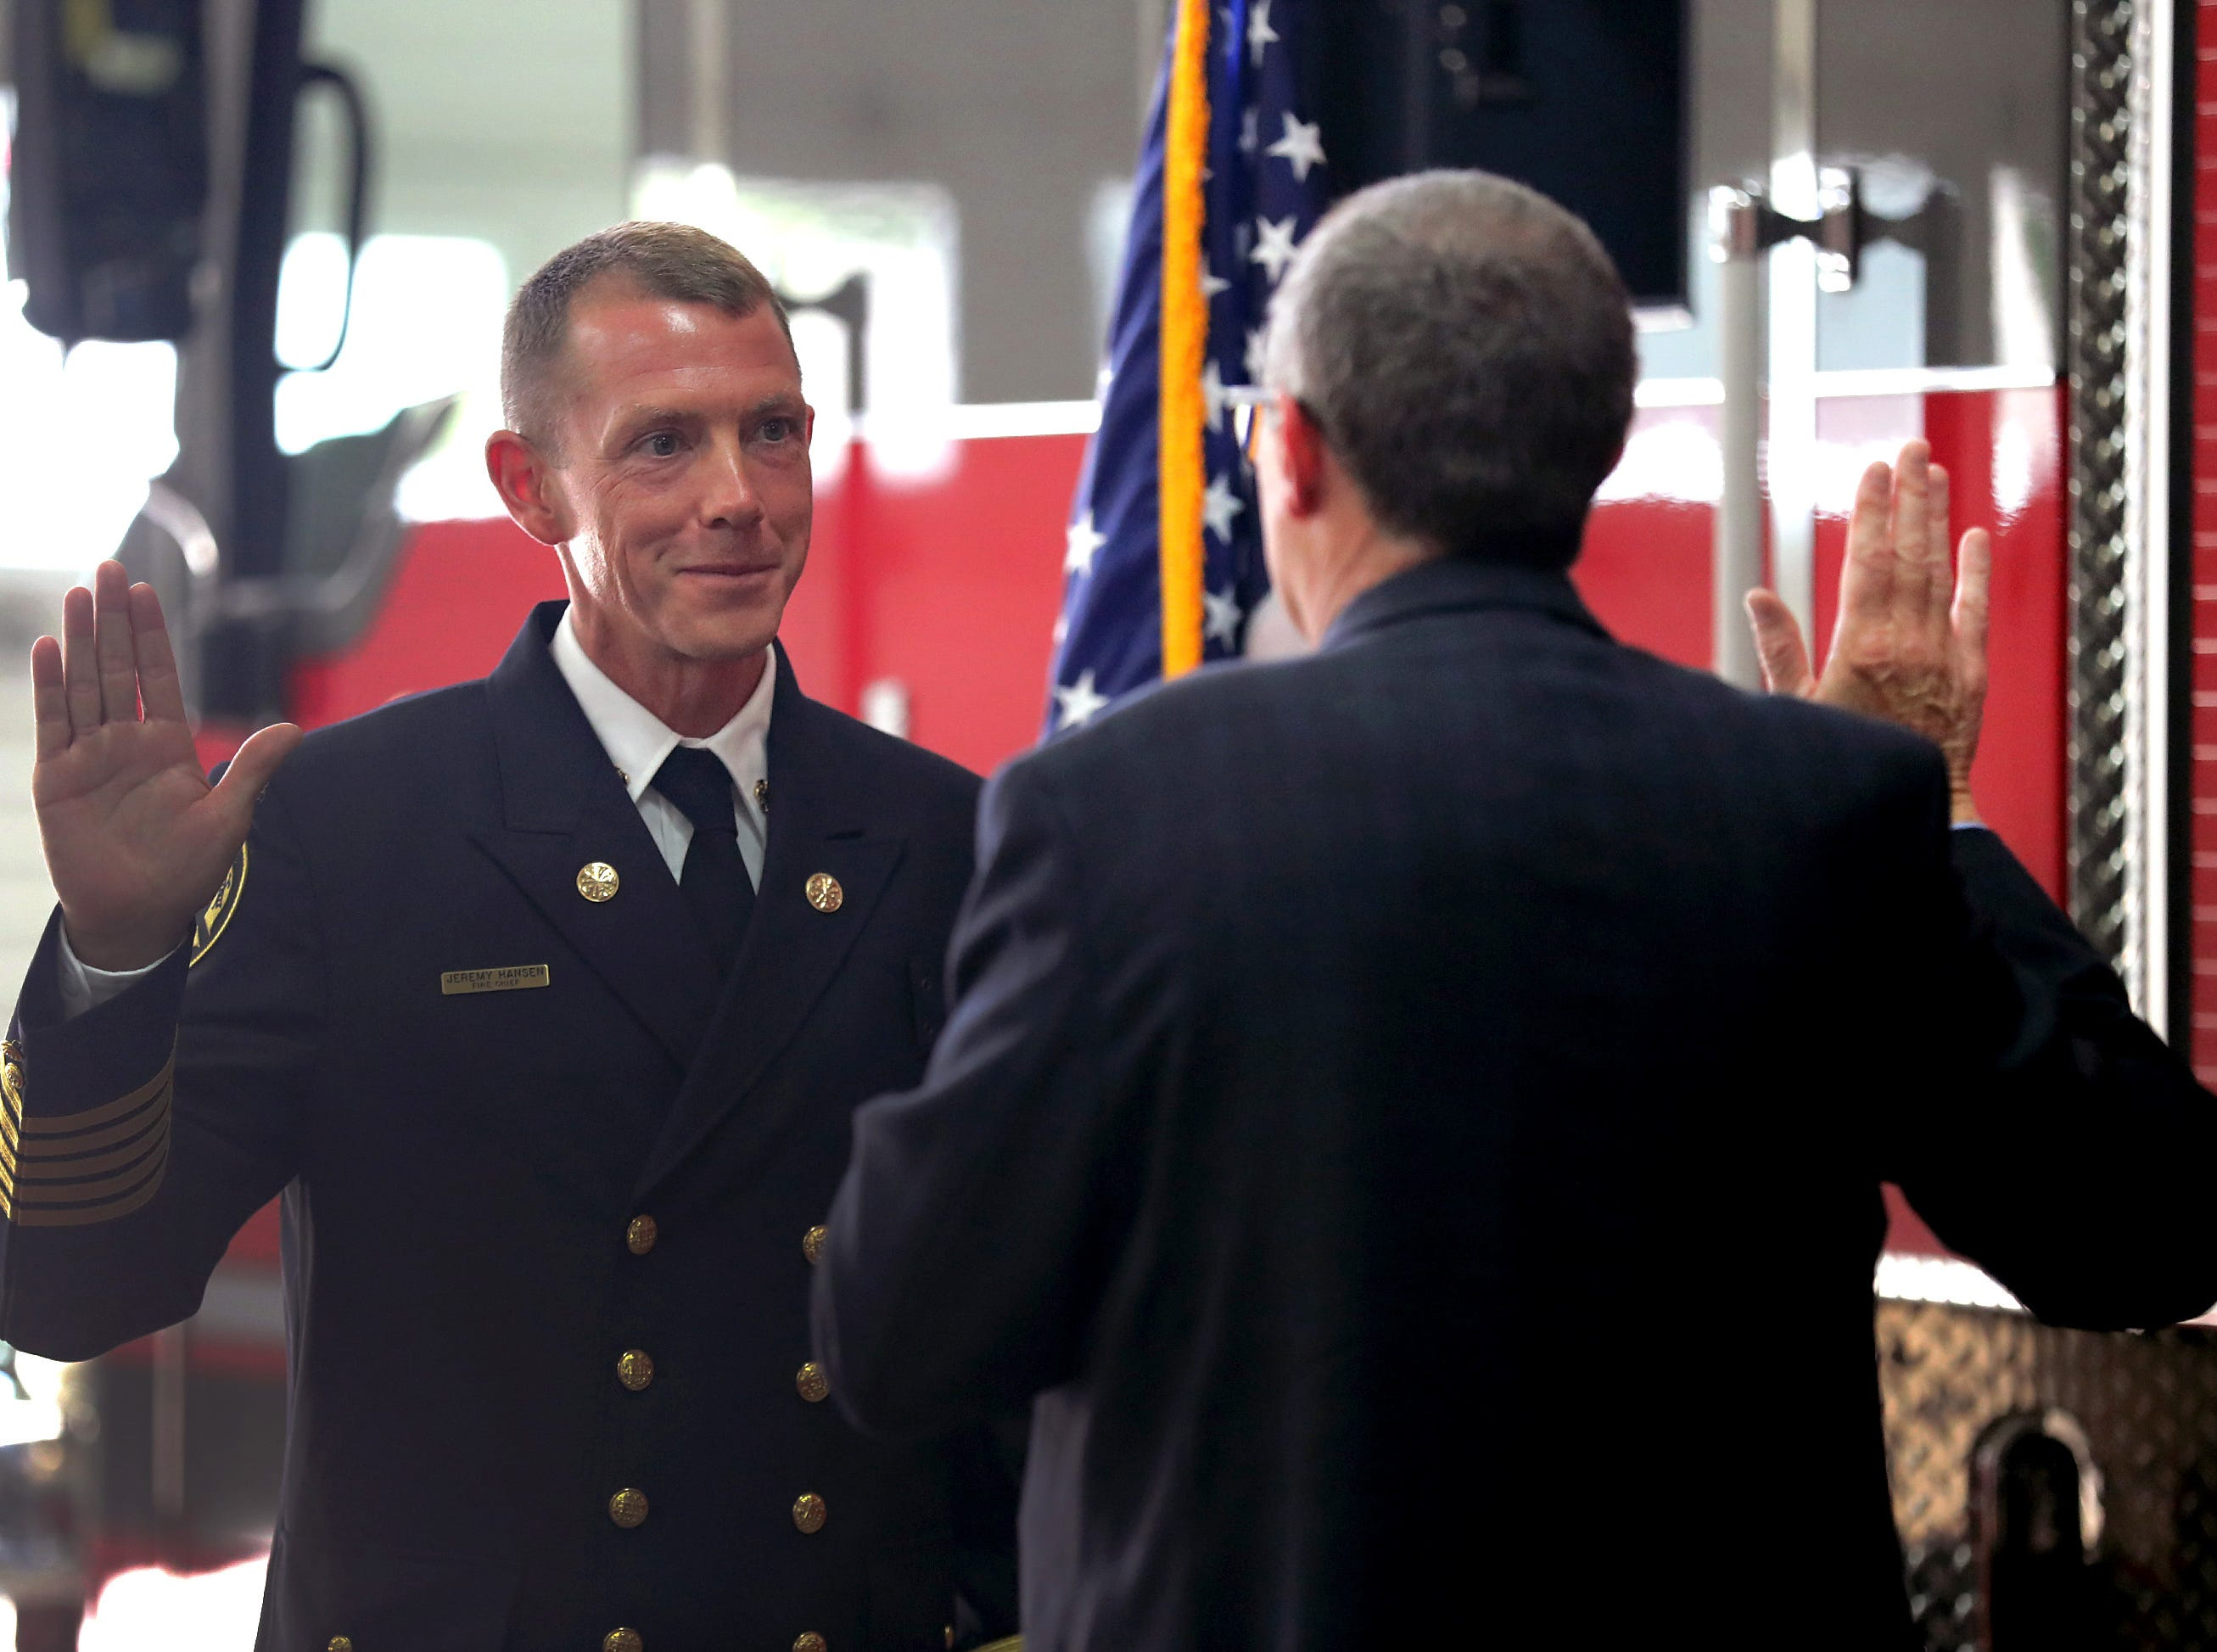 New Appleton Fire Chief Jeremy Hansen is sworn in by Appleton City Attorney James Walsh during a ceremony on Monday, July 16, 2018 at Fire Station 1 in Appleton, Wis. 